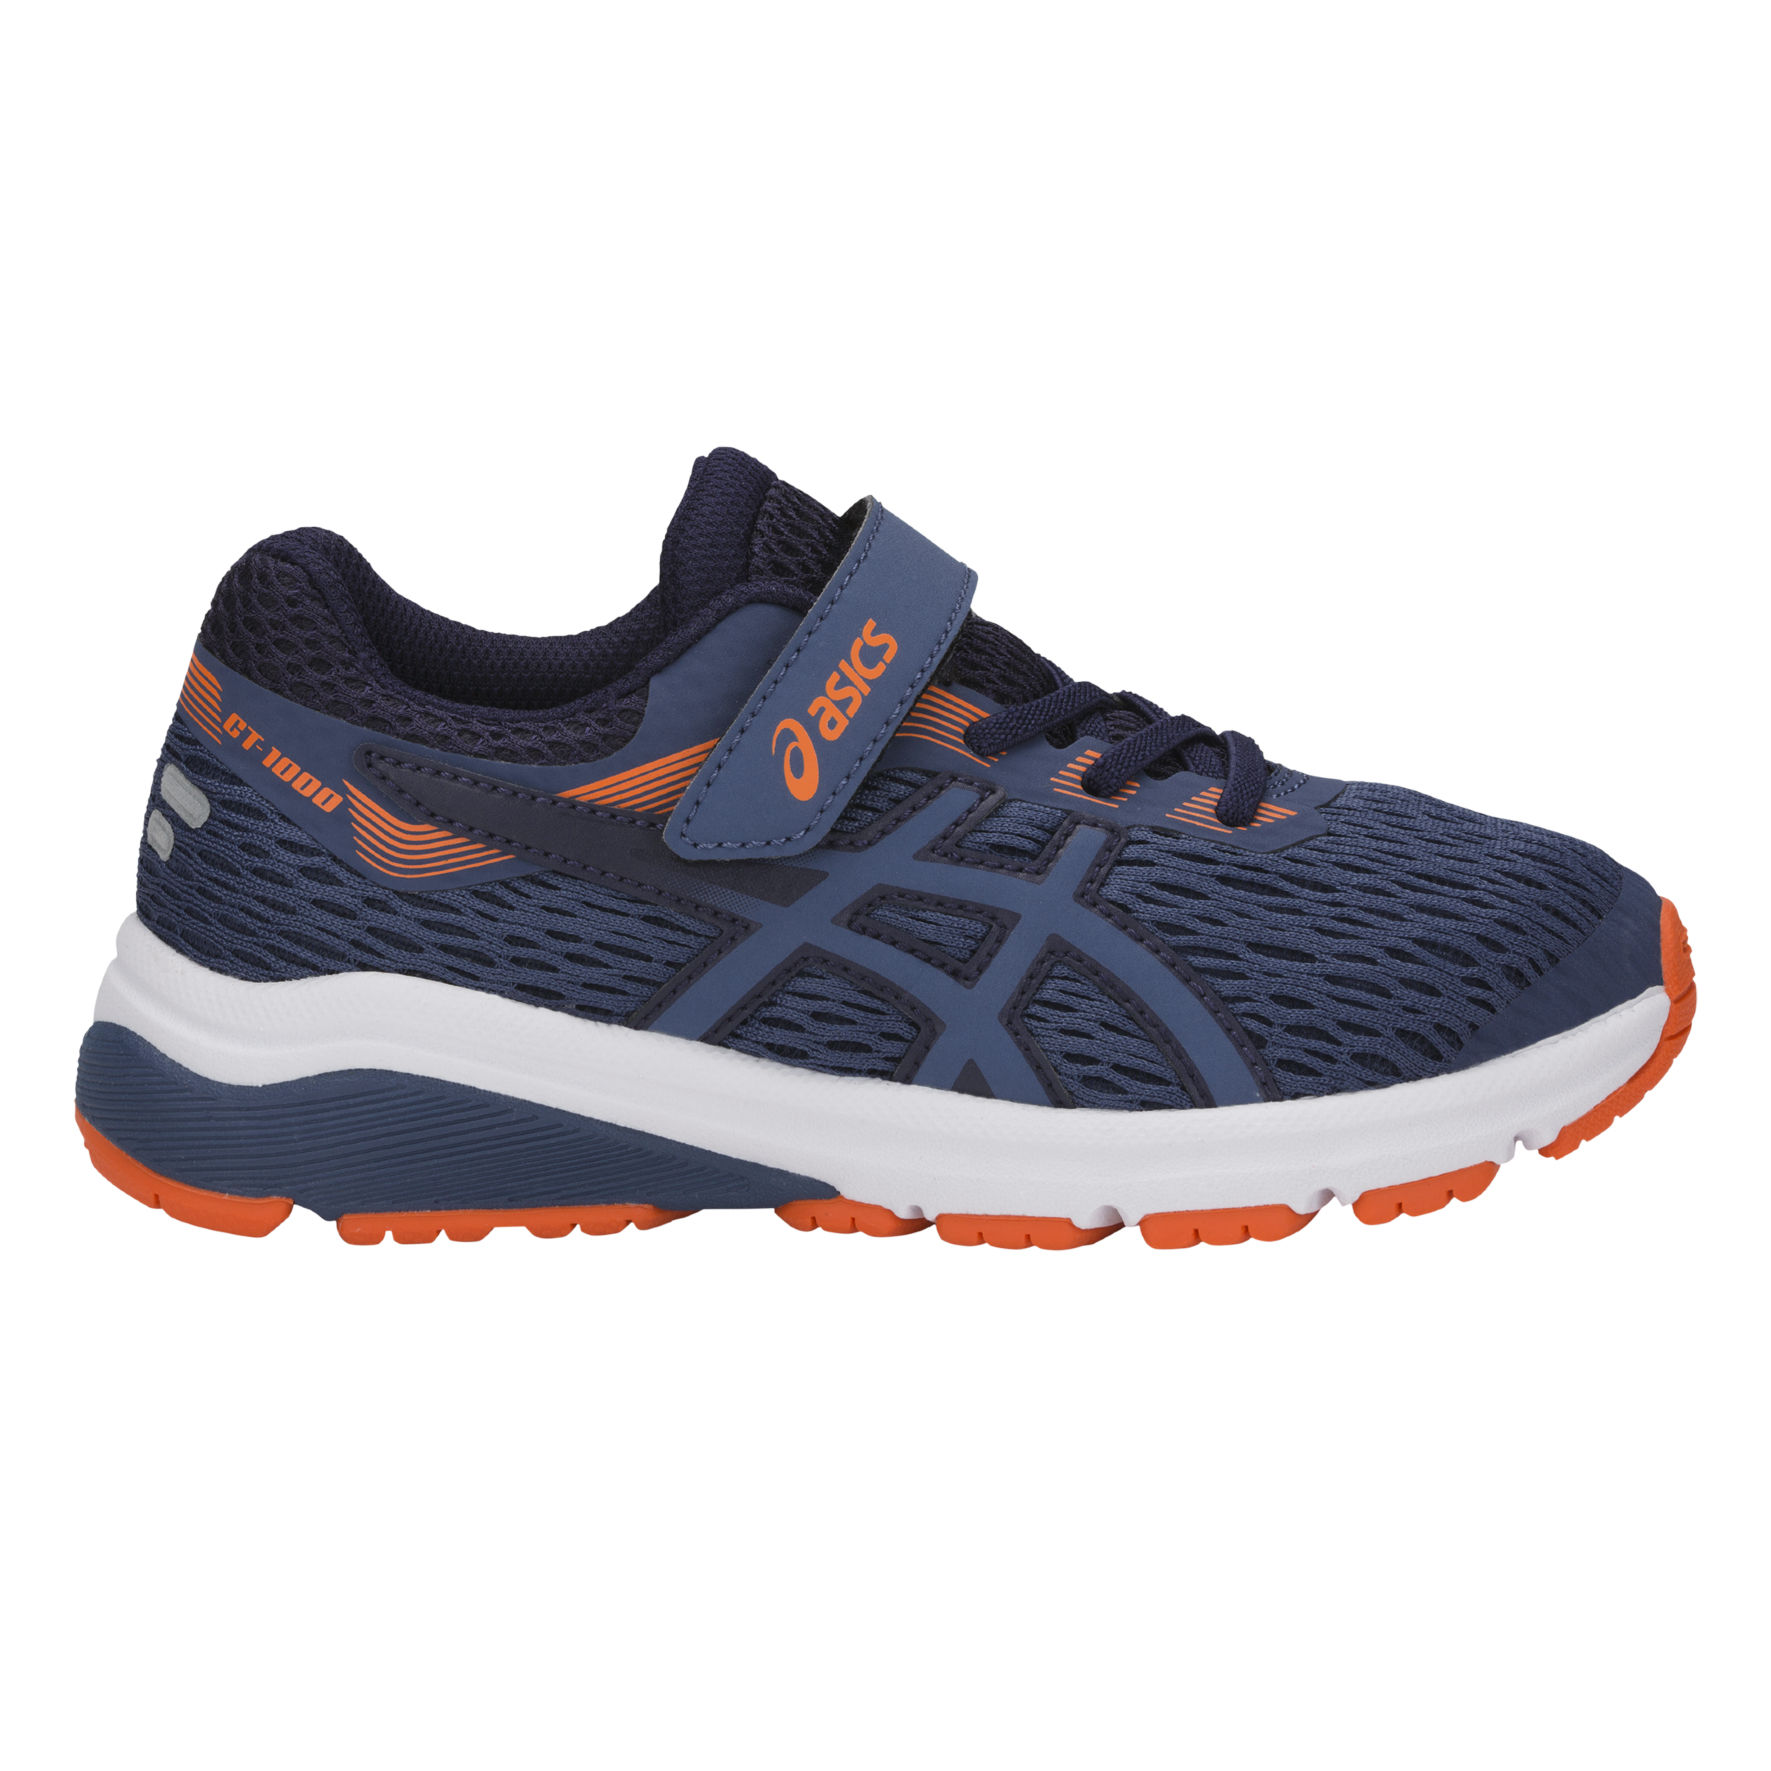 Asics GT-1000 7 PS (Blau Orange)